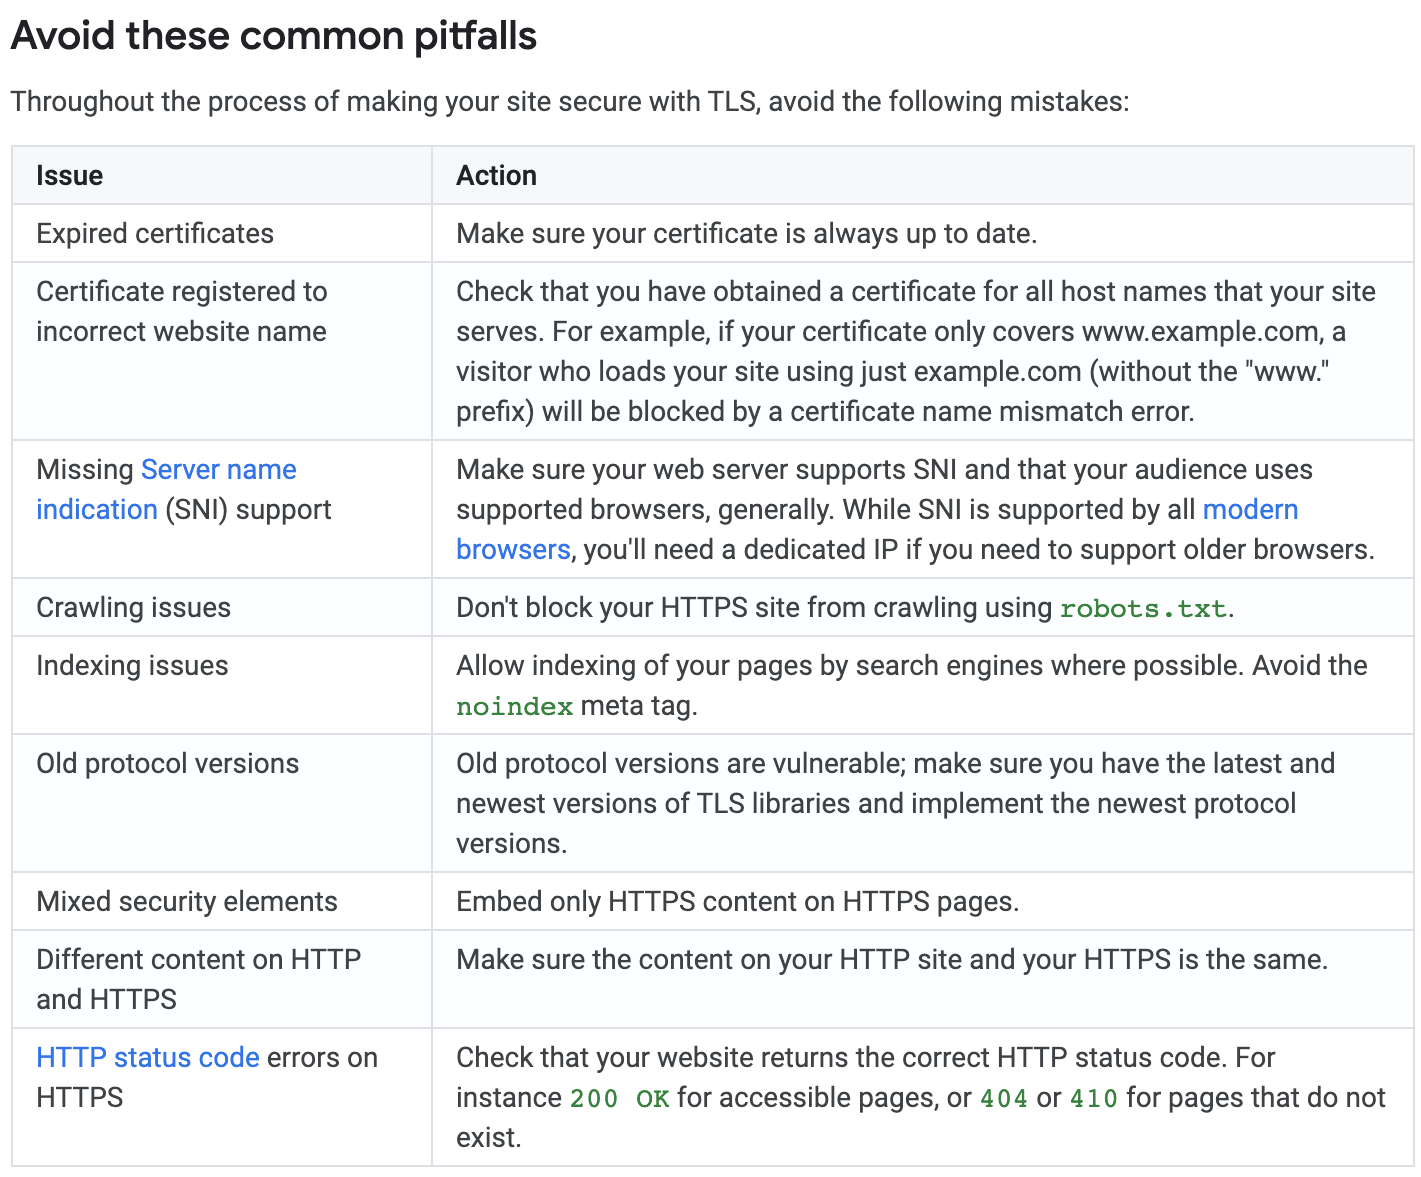 Google's recommendations on TLS, things to avoid